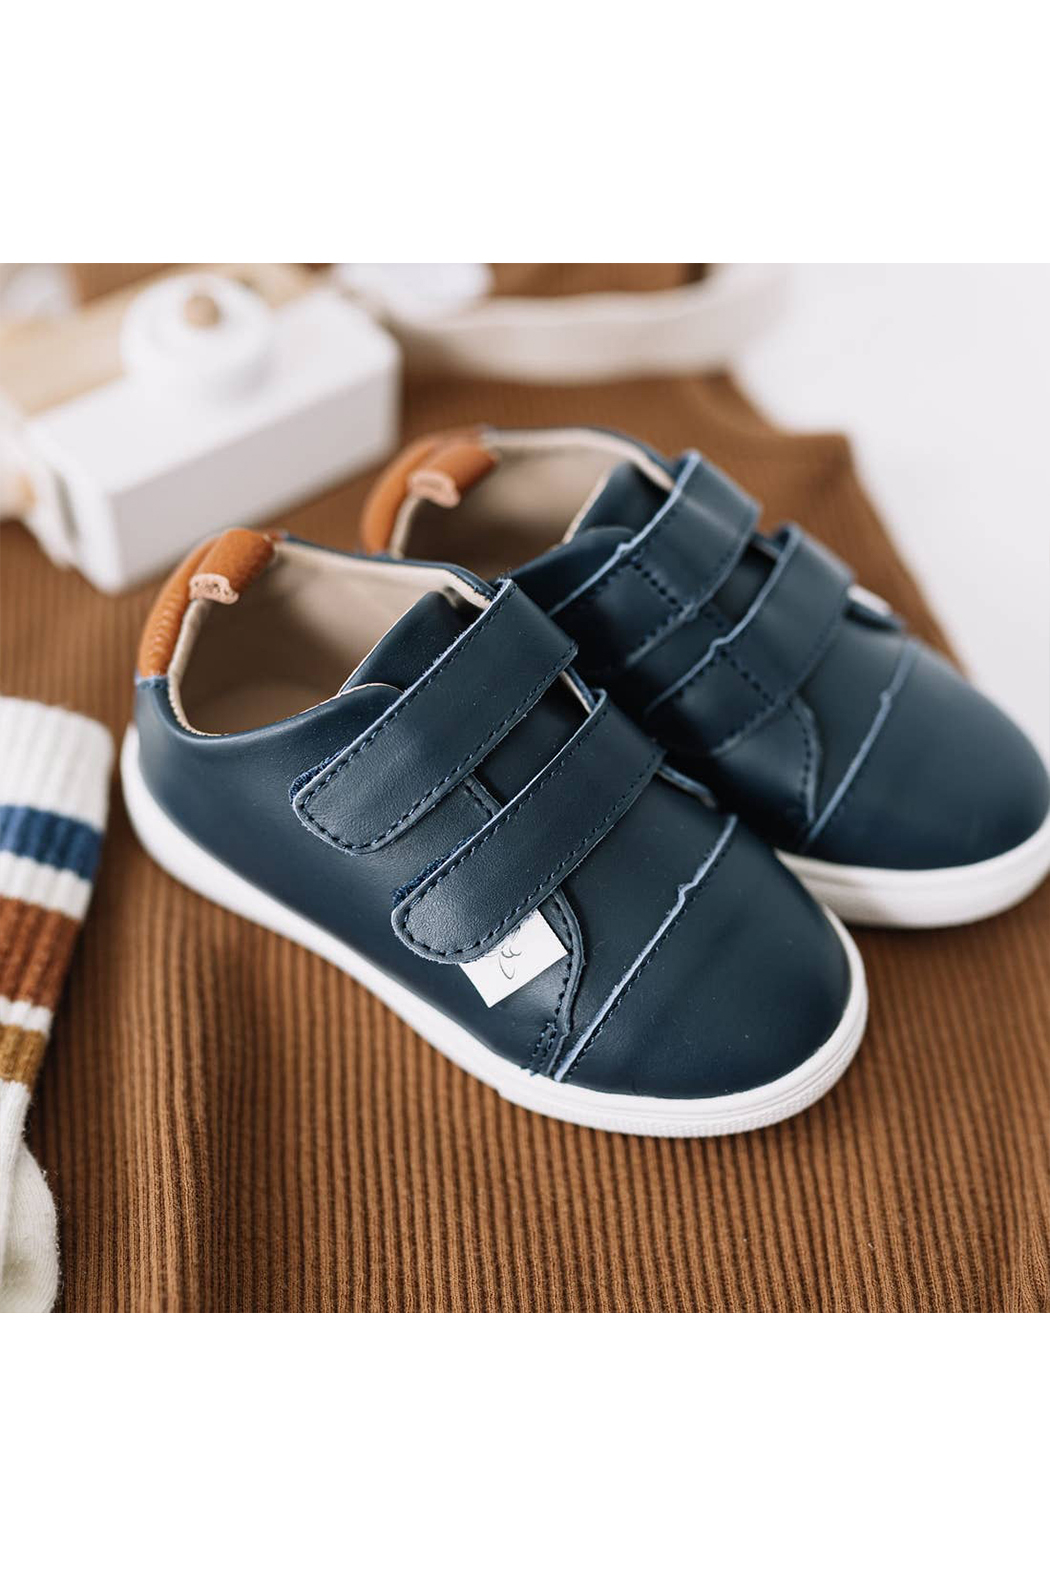 Little Love Bug Company Casual Navy Low Top Moccasin - Back Cropped Image